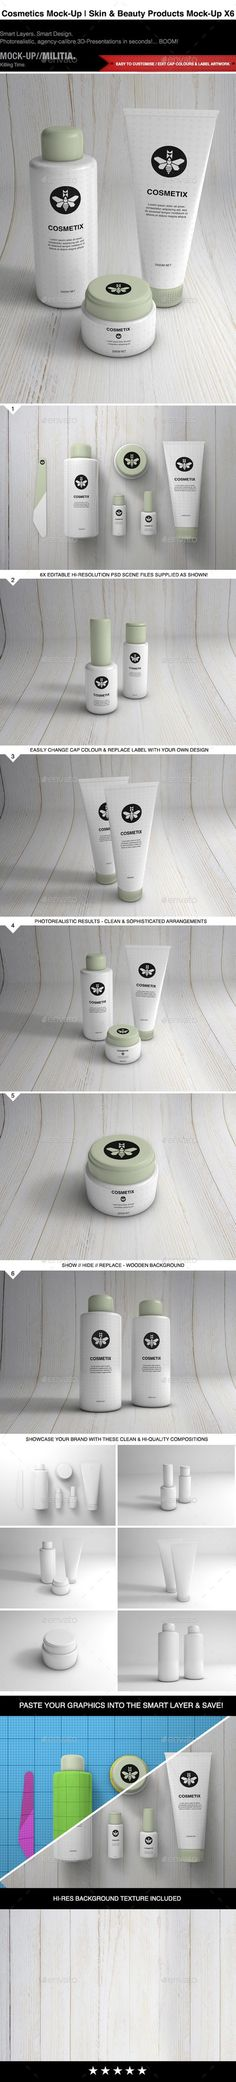 Cosmetics Mock-Up | Toiletries & Make Up Mock-Up | Download: http://graphicriver.net/item/cosmetics-mockup-toiletries-make-up-mockup/11043438?ref=ksioks: